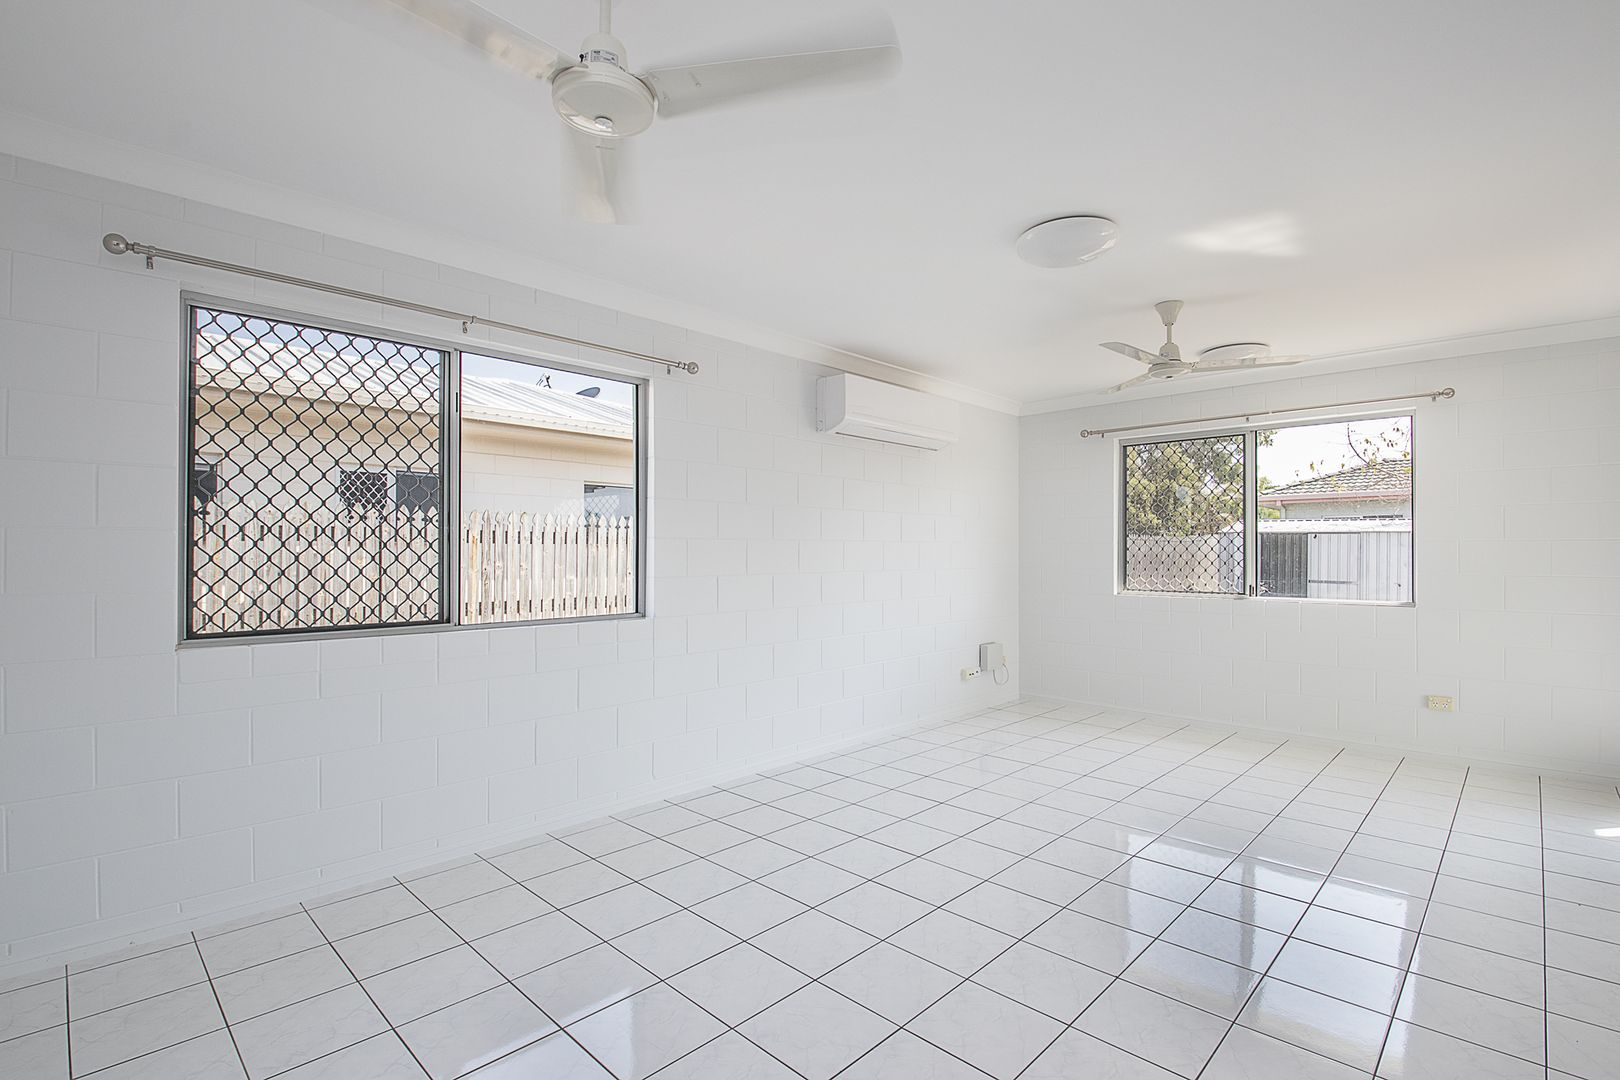 26 Gould Street, Thuringowa Central QLD 4817, Image 1